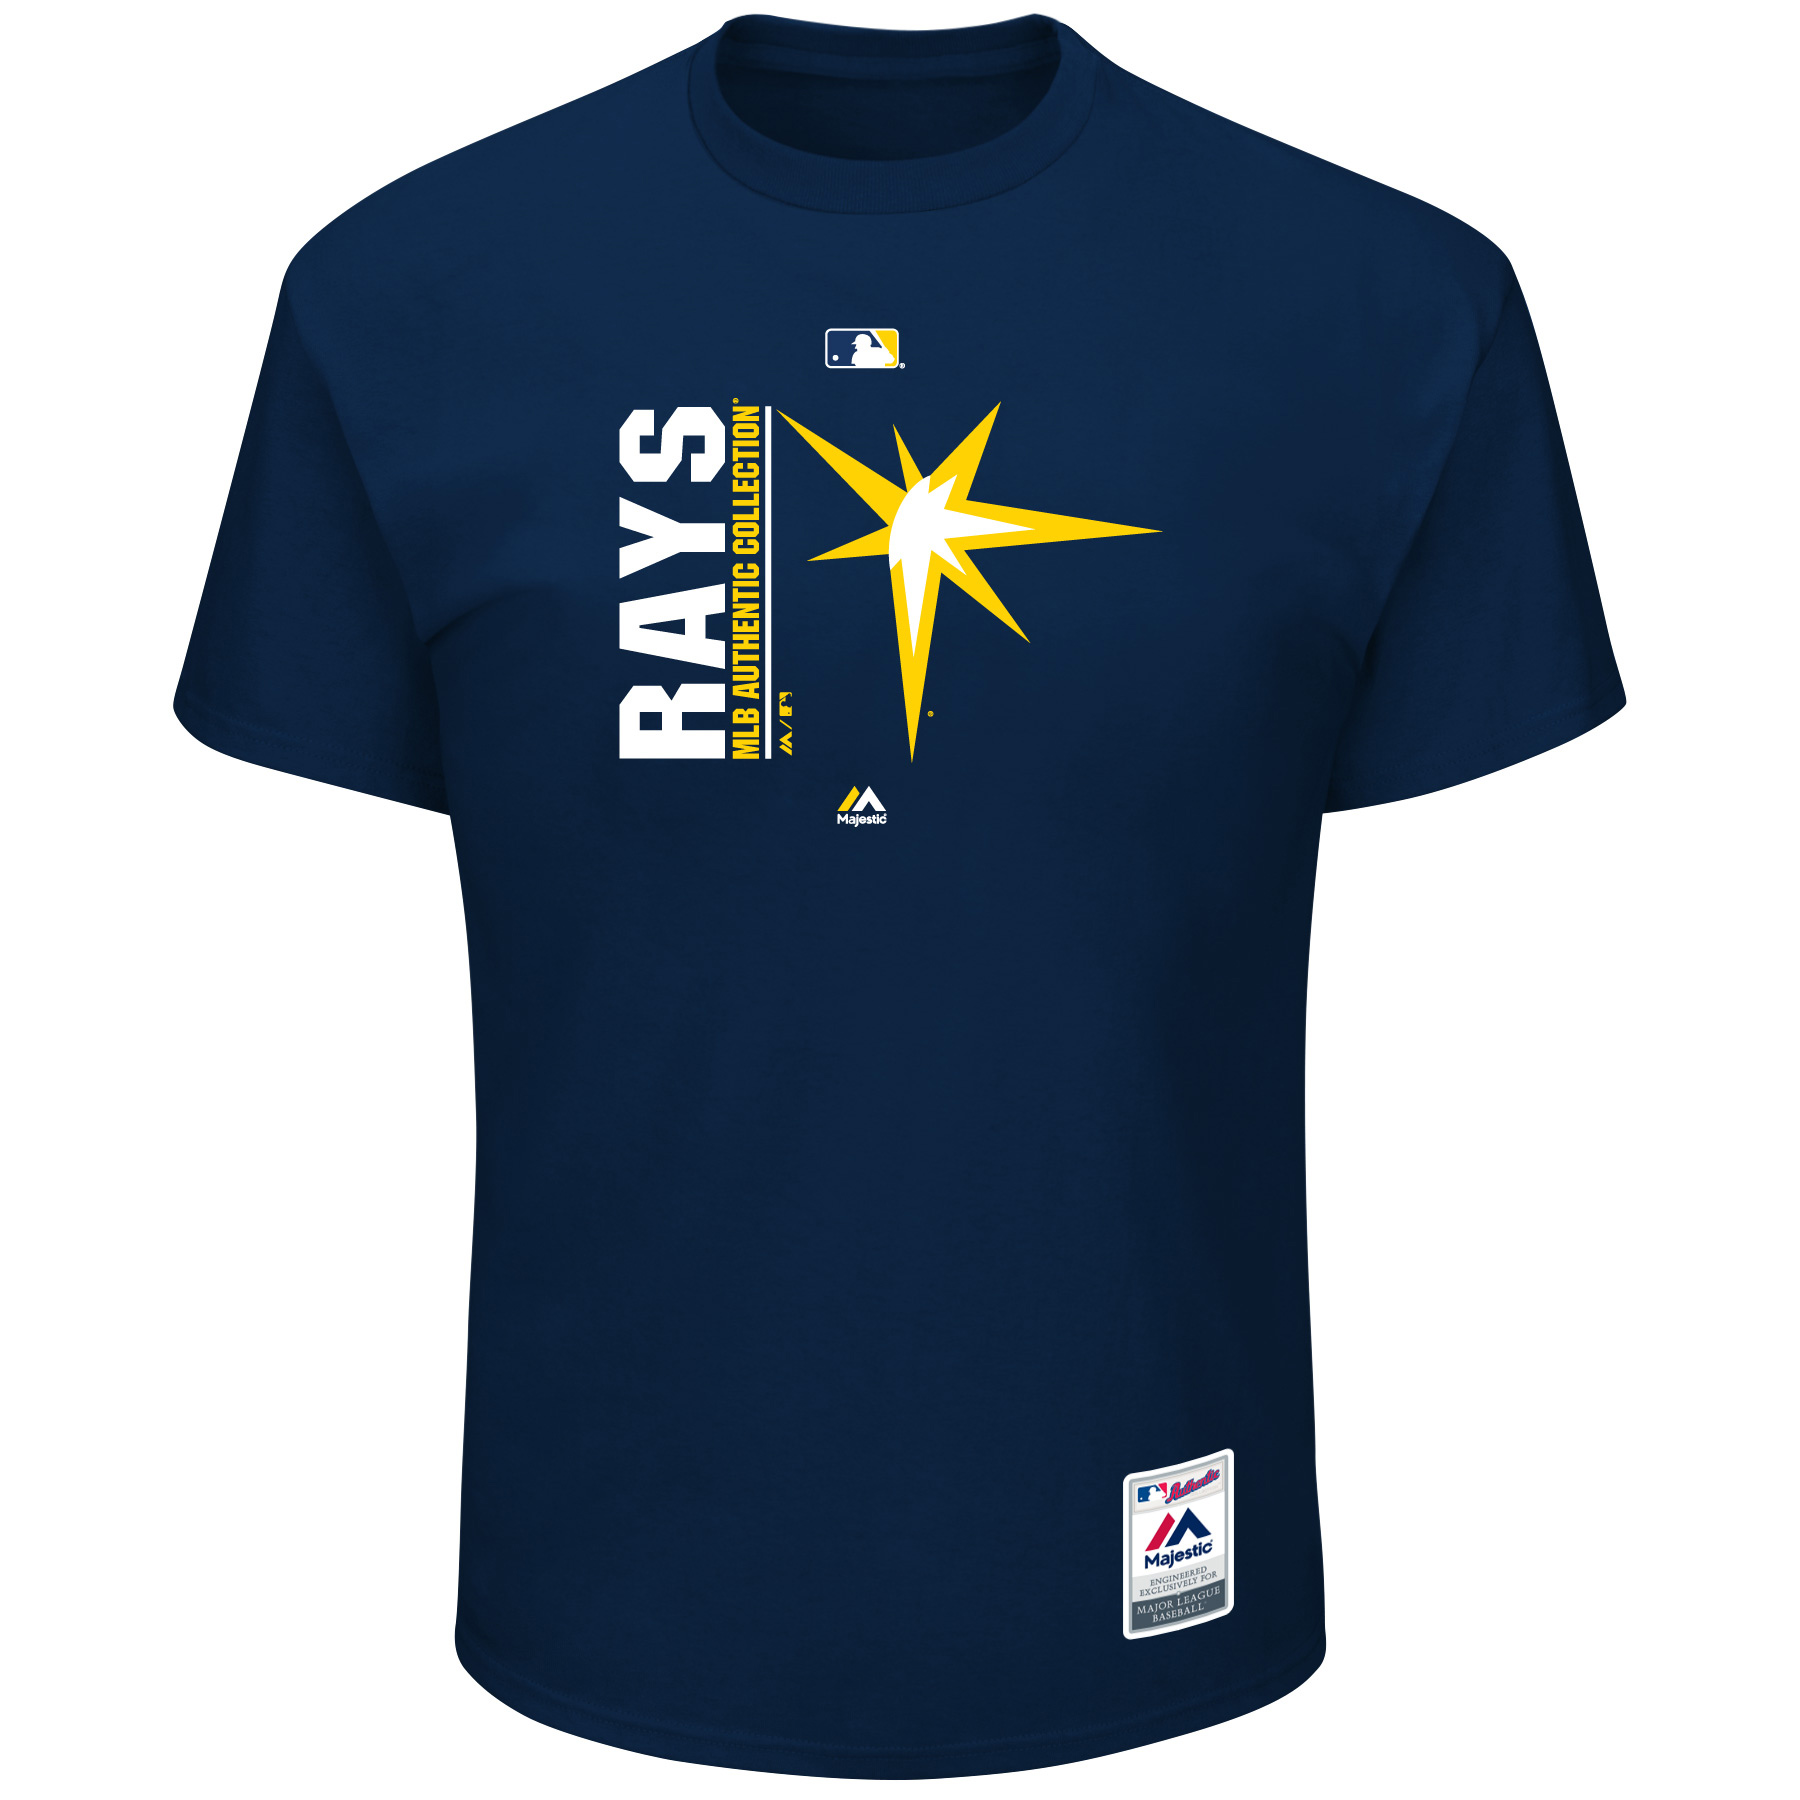 Men's Majestic Navy Tampa Bay Rays Big & Tall Team Icon T-Shirt